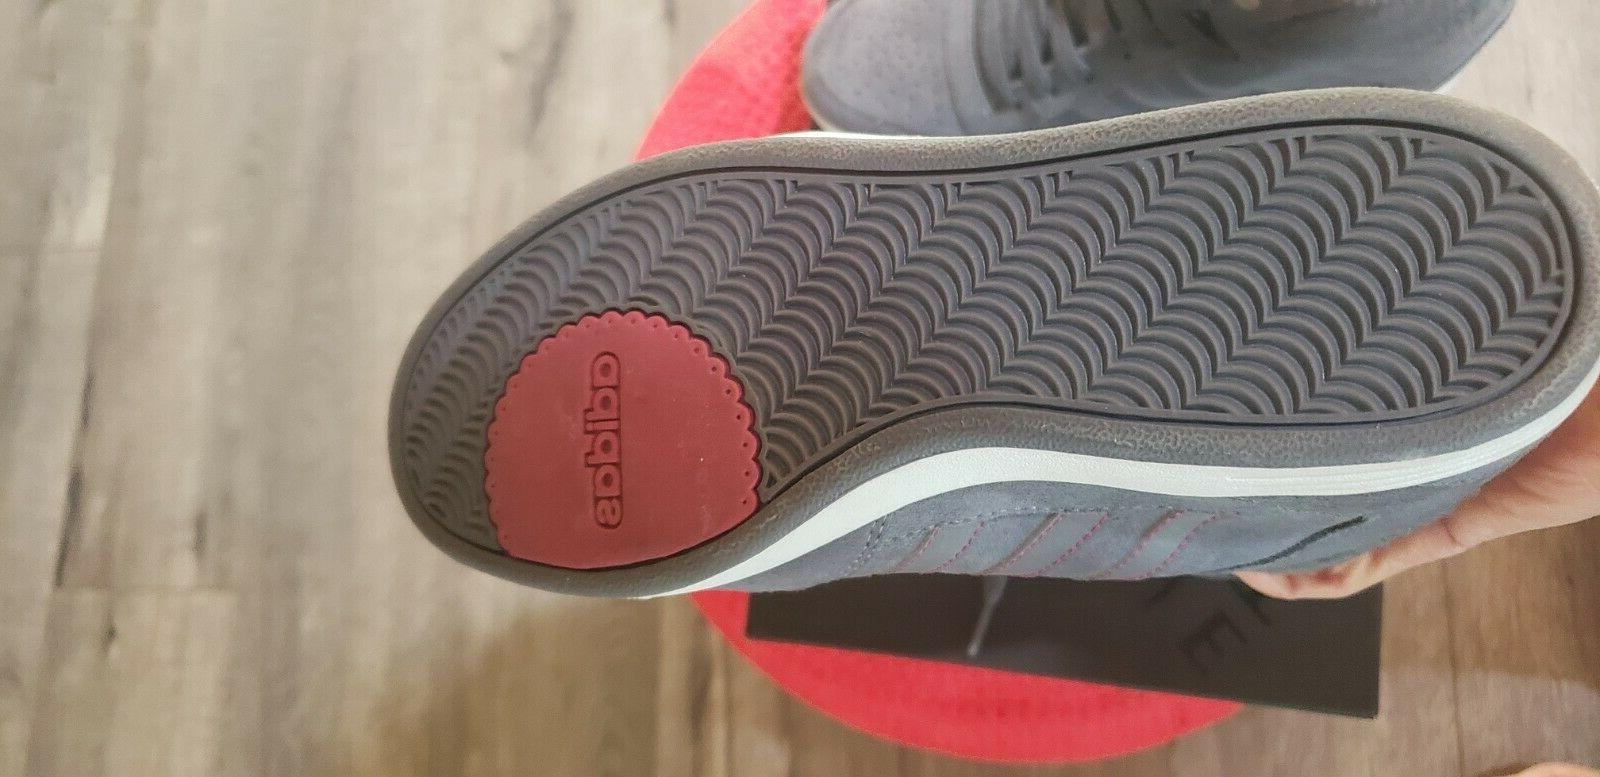 Adidas Gray Suede w Pink Stitching and Lettering Size